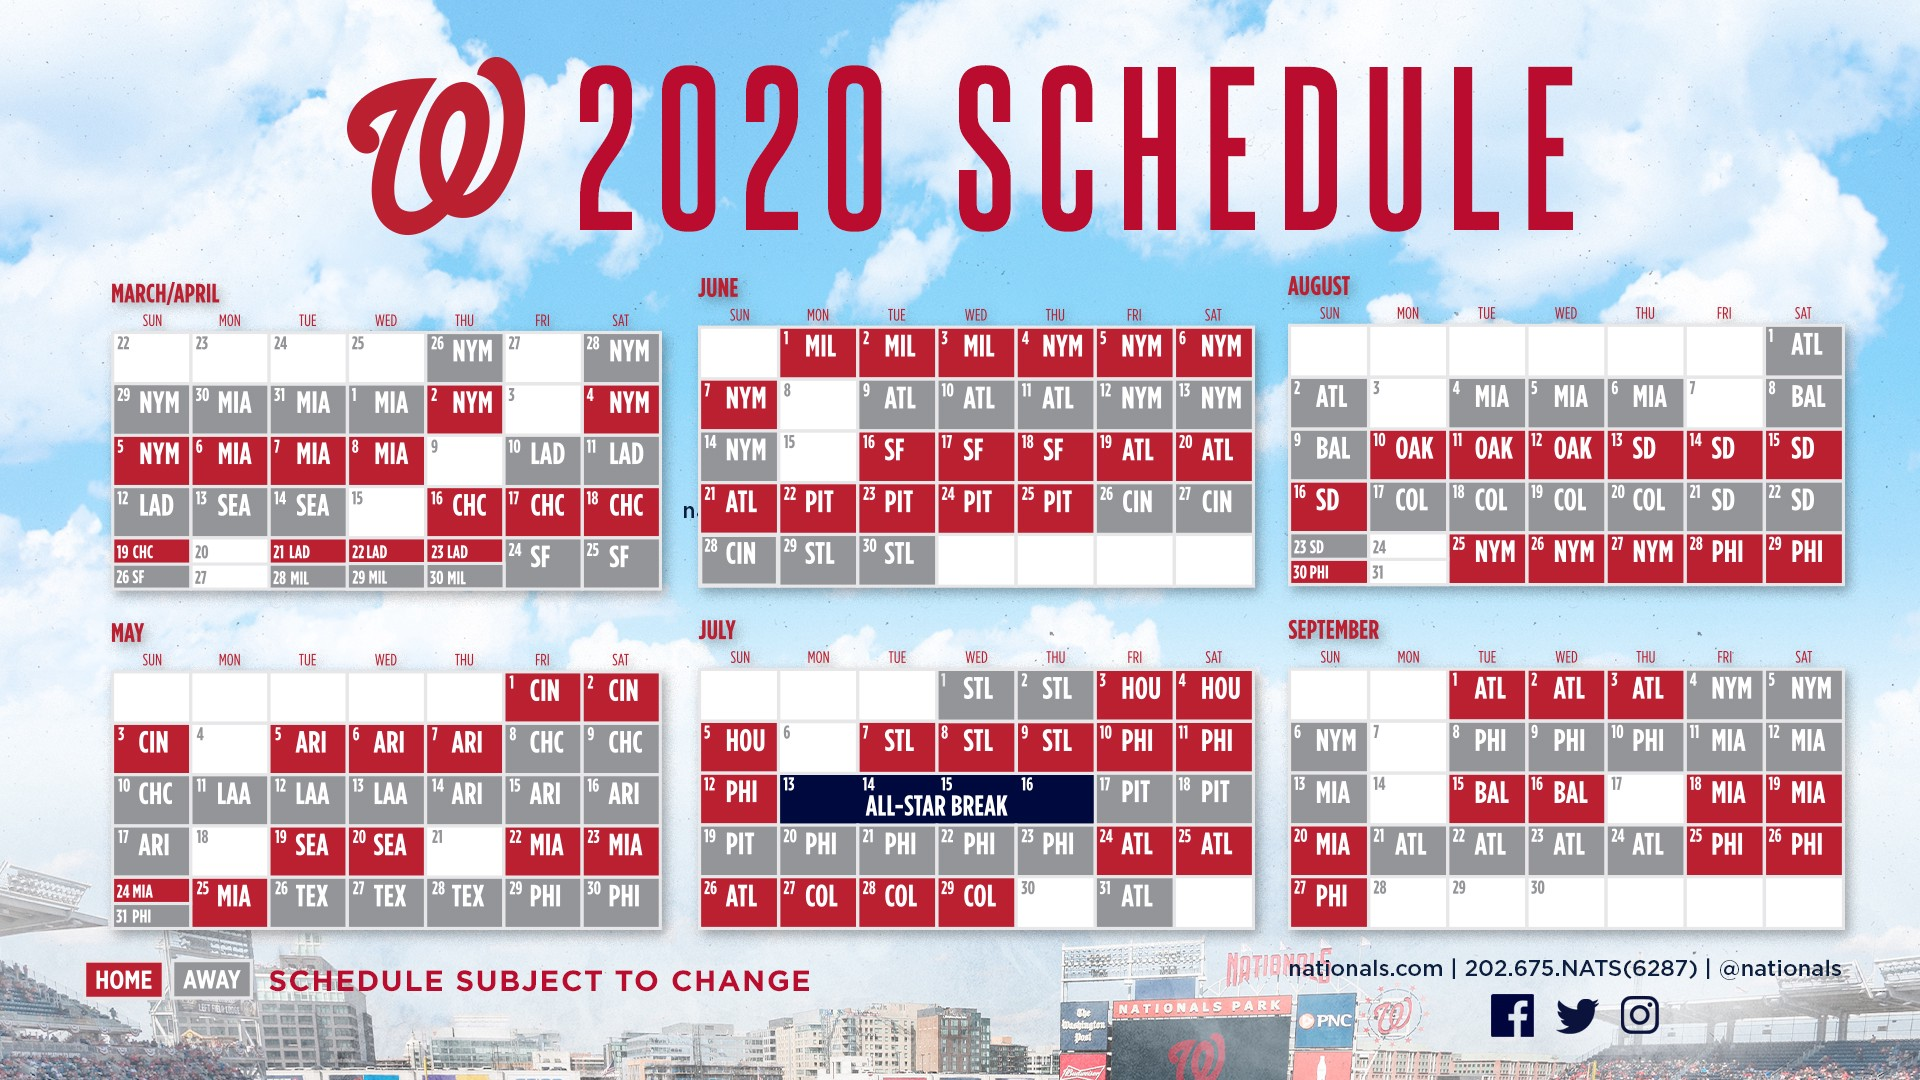 Sf Giants Schedule 2020 Printable.Nationals Announce 2020 Schedule Curly W Live